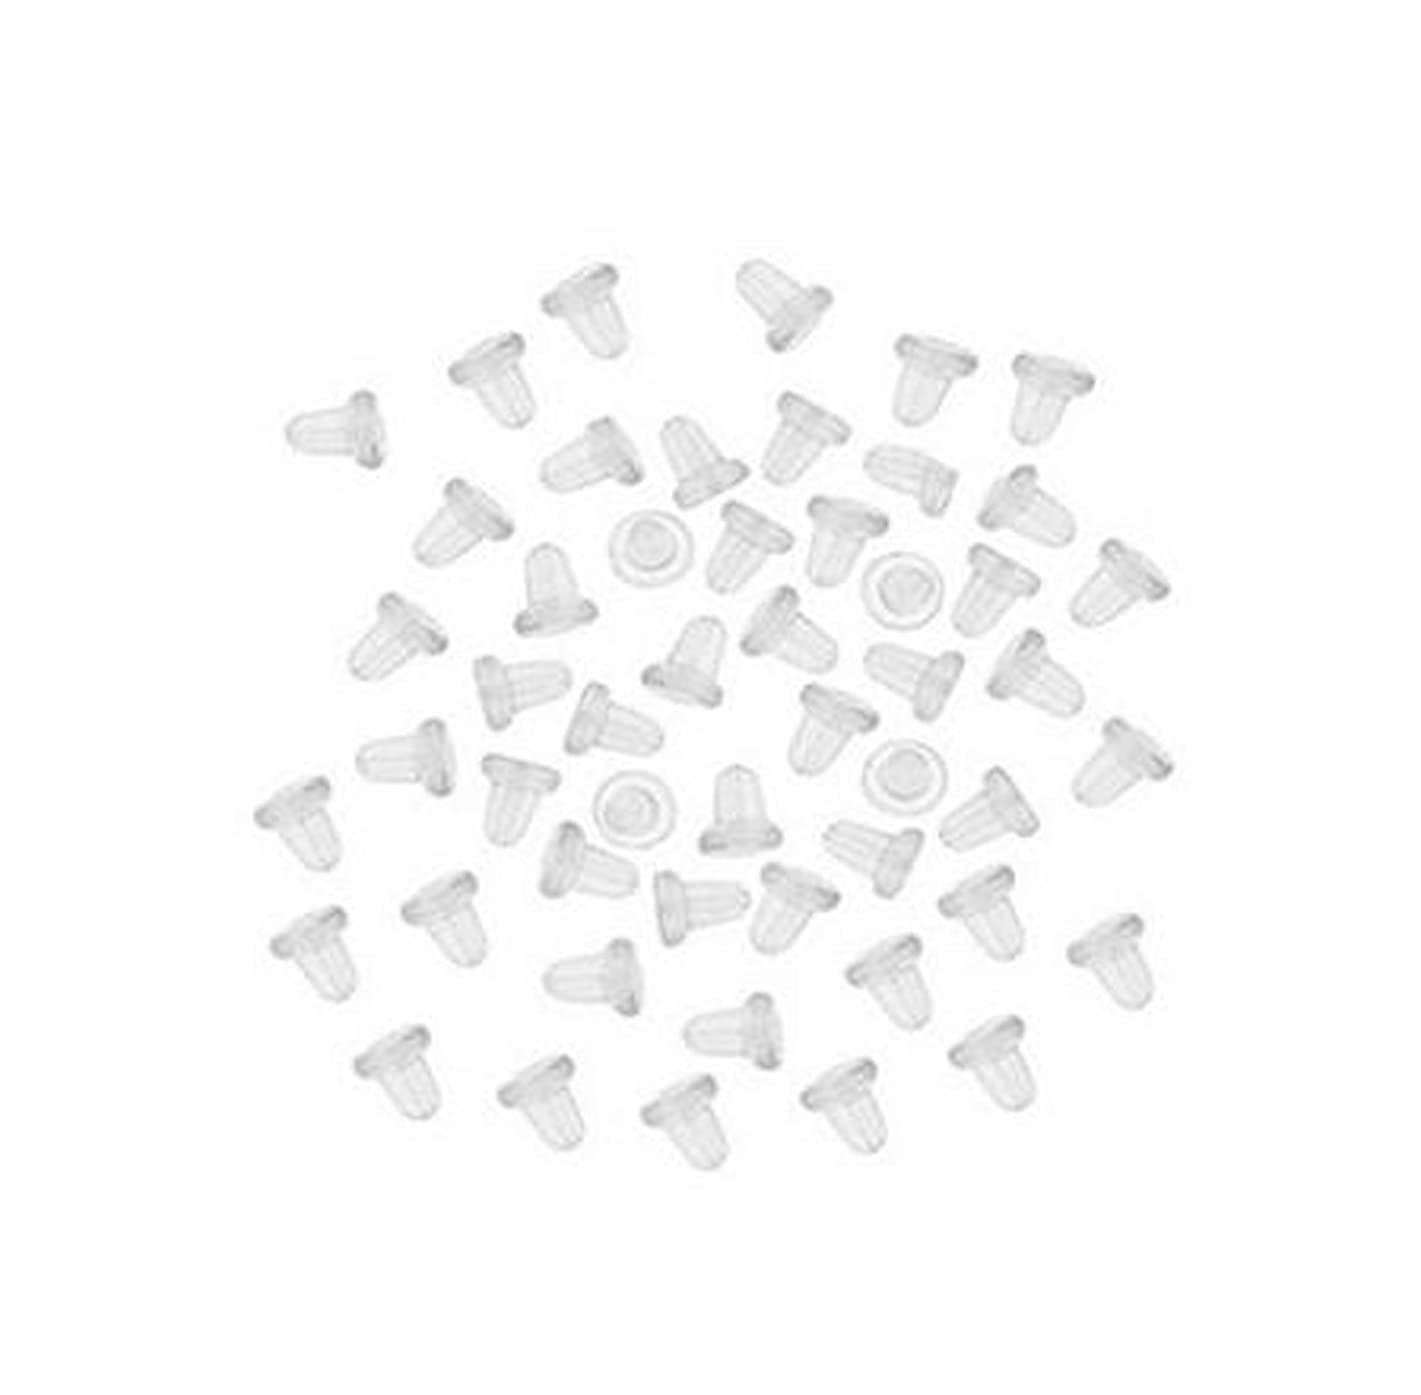 50Pair(100pcs)Clear Color Plastic Rubber Bullet Clutch Earring Safety Back Stopper Replacement for Fish Hook Earring (Clear)